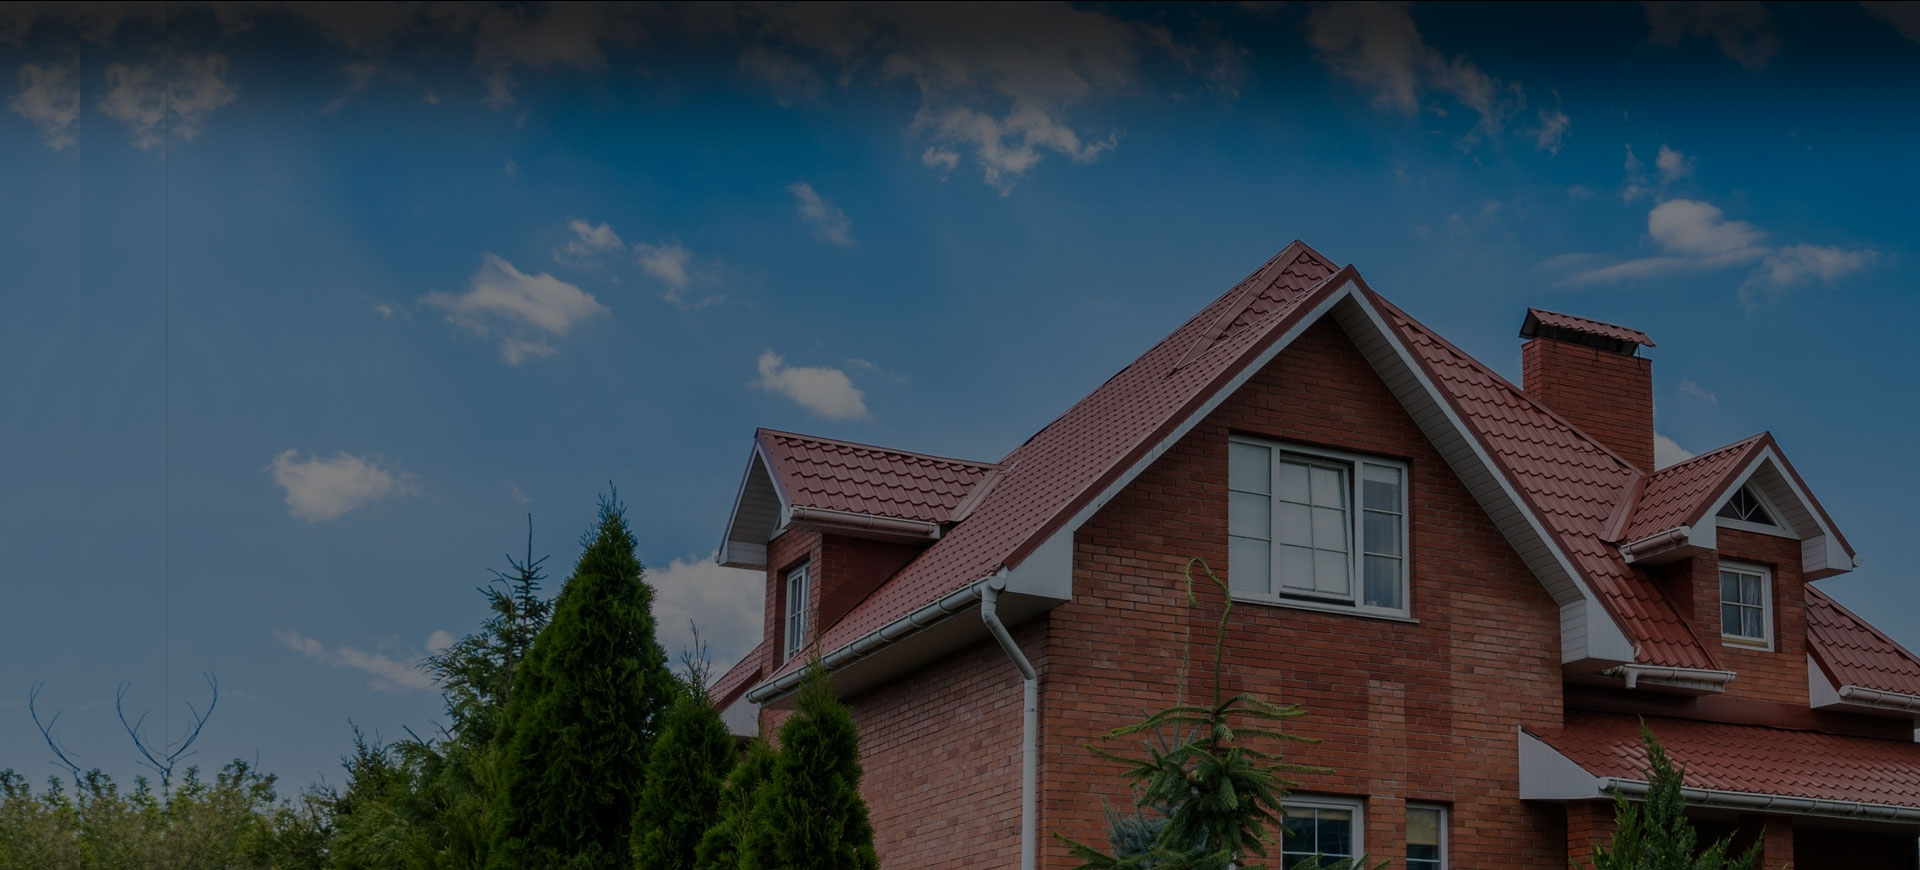 Nice brick home with an orange tile roof against a clear sky.